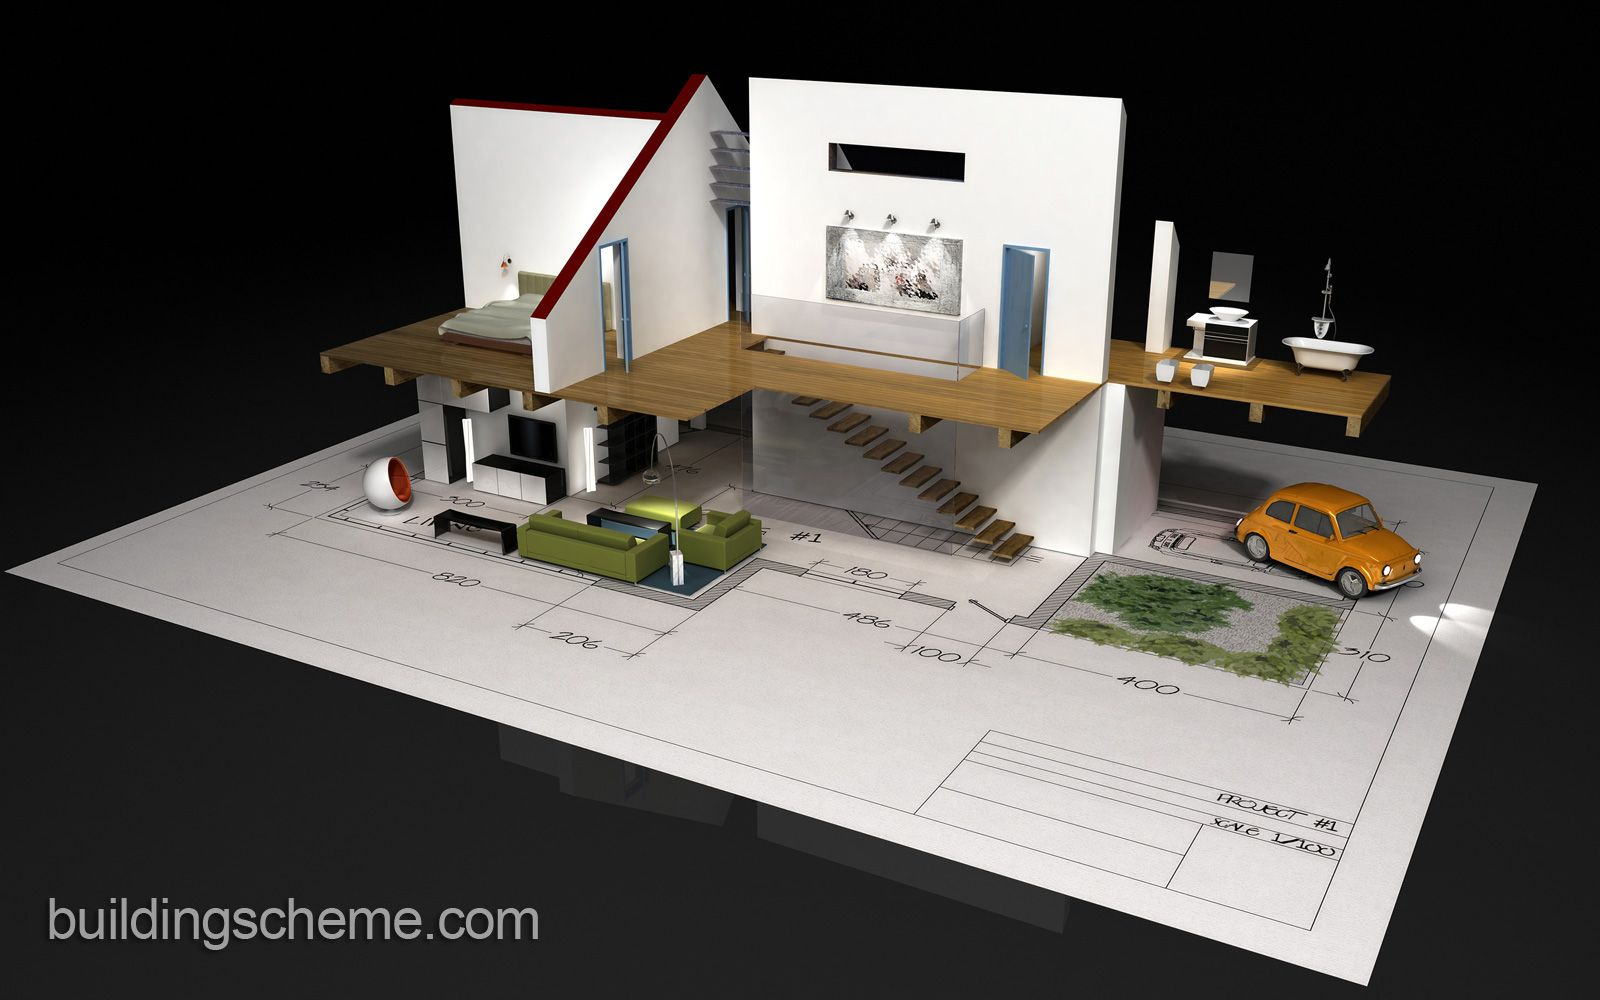 Good 3D Building Scheme And Floor Plans Ideas For House And Office Design: 3D  Building